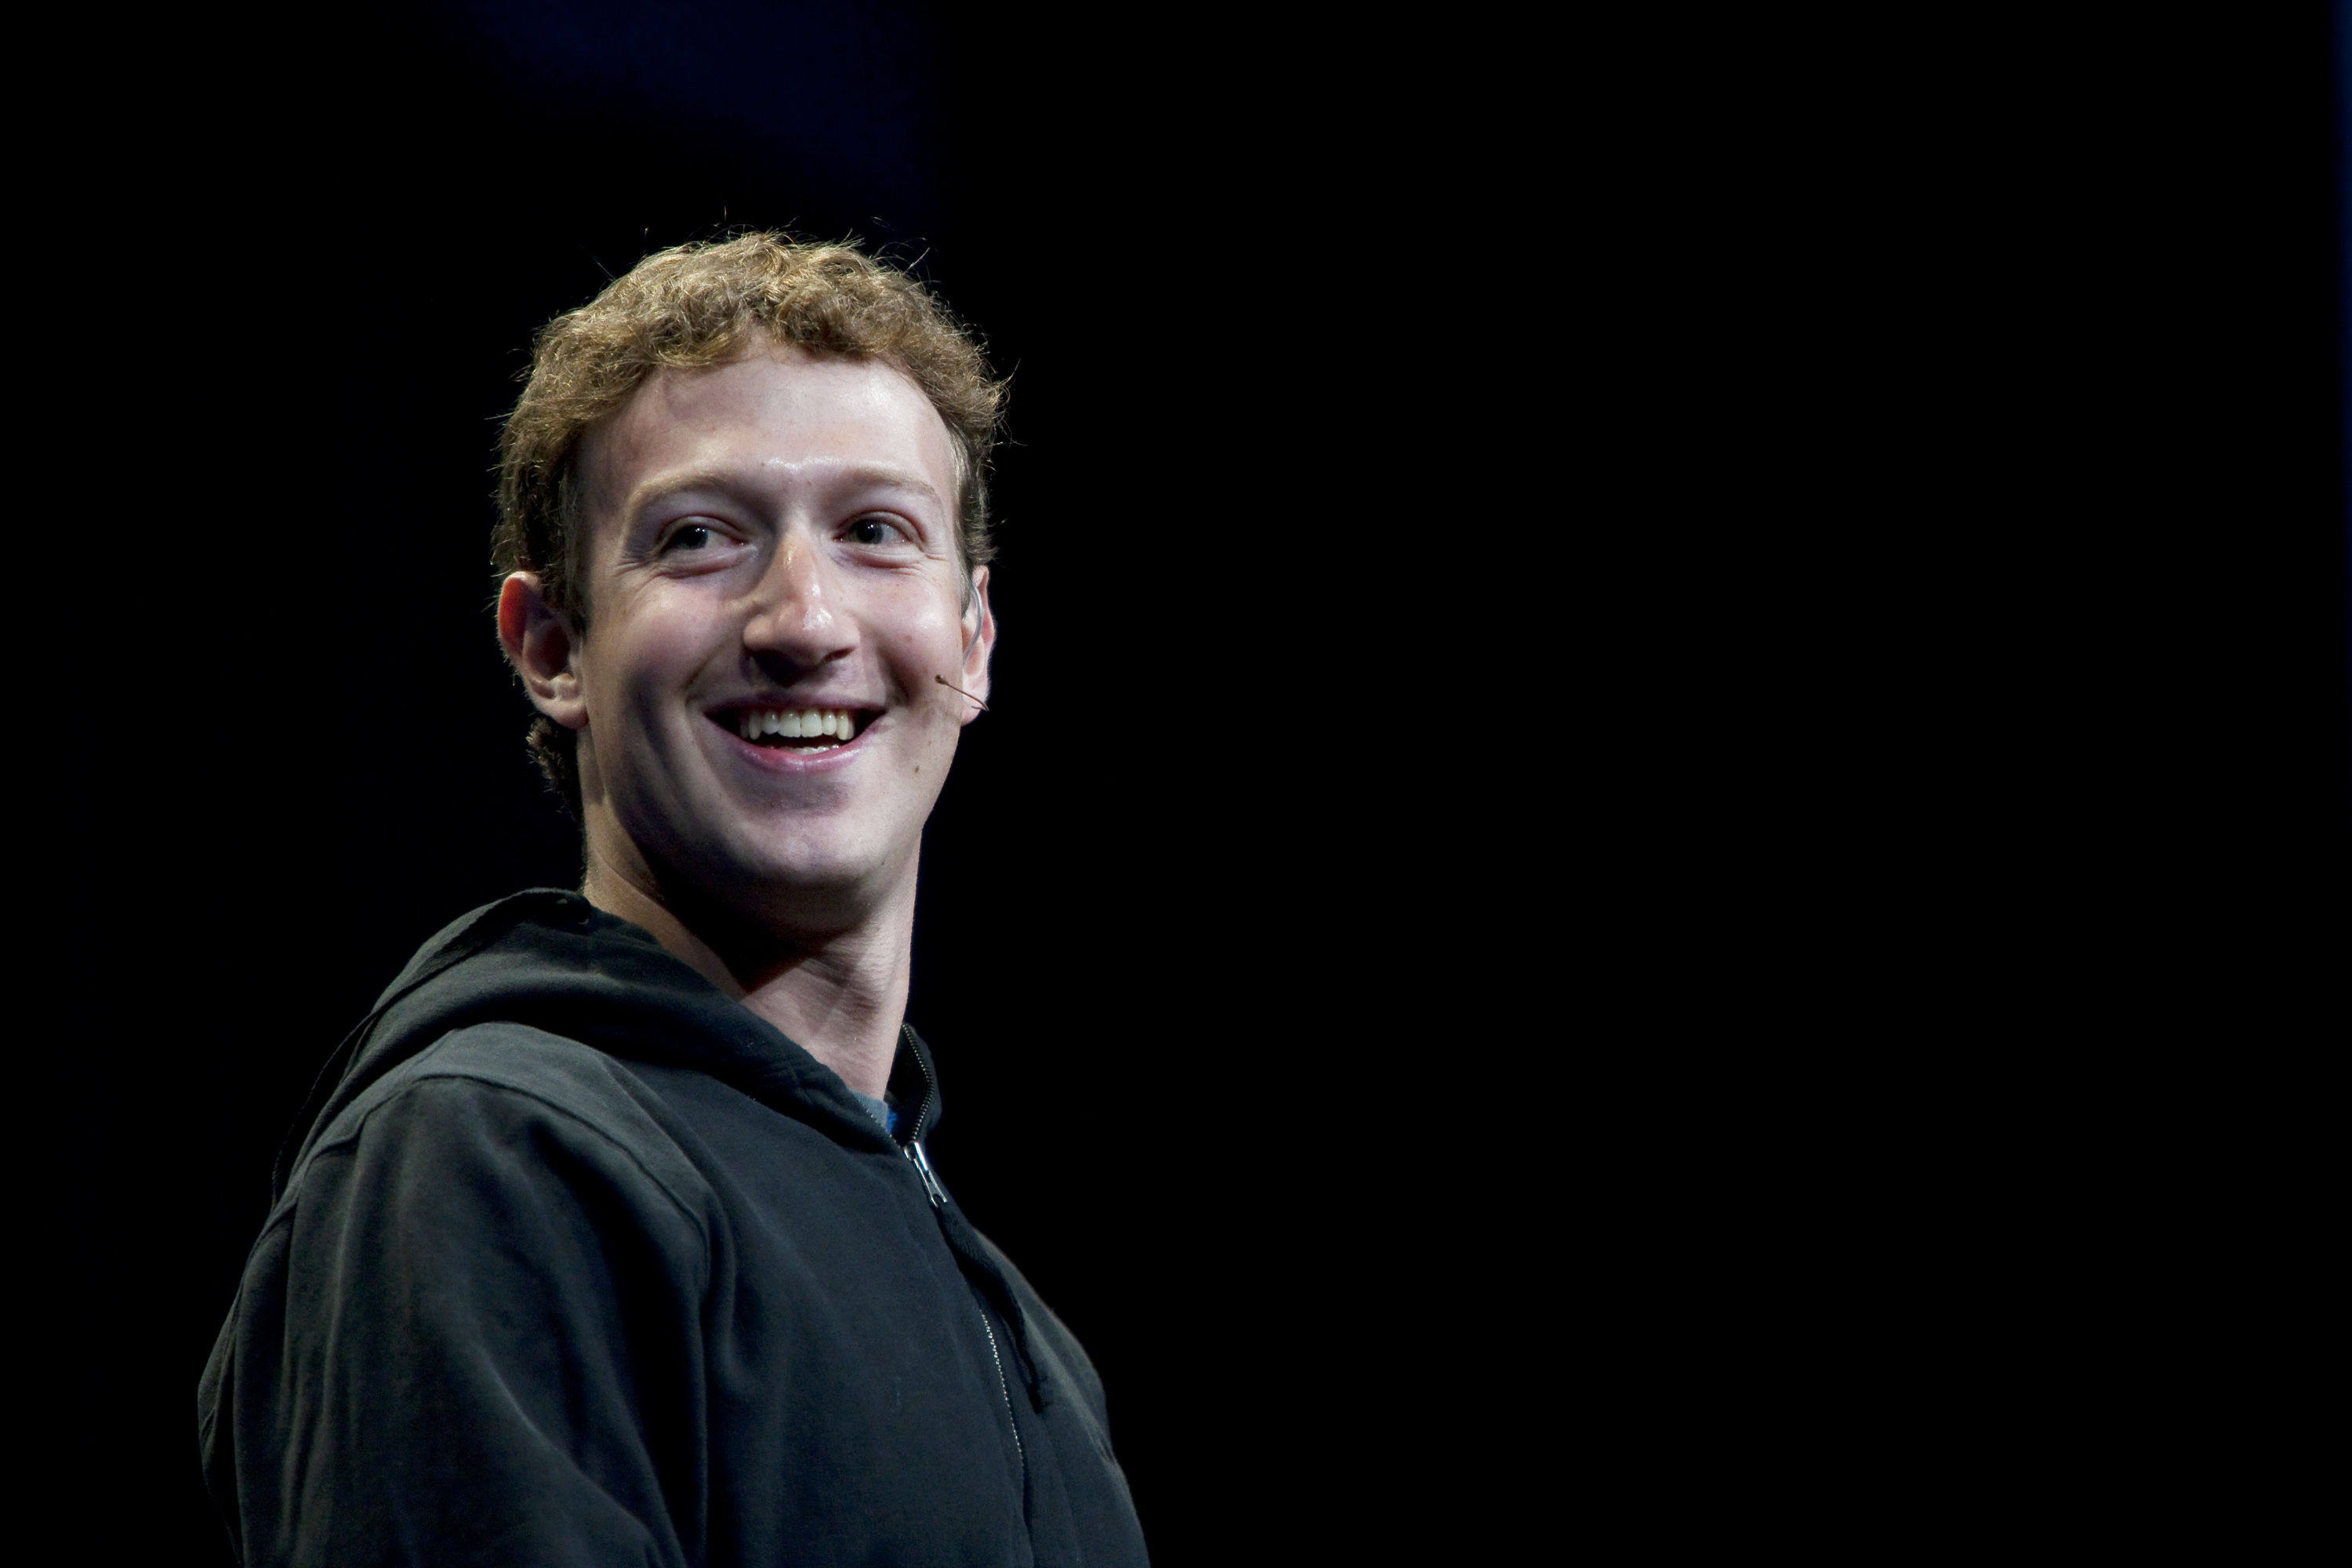 Mark Zuckerberg, founder and chief executive officer of Facebook Inc., gives a keynote address at the annual F8 developer conference in San Francisco, California, U.S., on Wednesday, April 21, 2010. Zuckerberg said he isn't counting on making money from the company's Facebook Credits online currency any time soon, even as he pumps resources into the project. Photographer: Kim White/Bloomberg via Getty Images